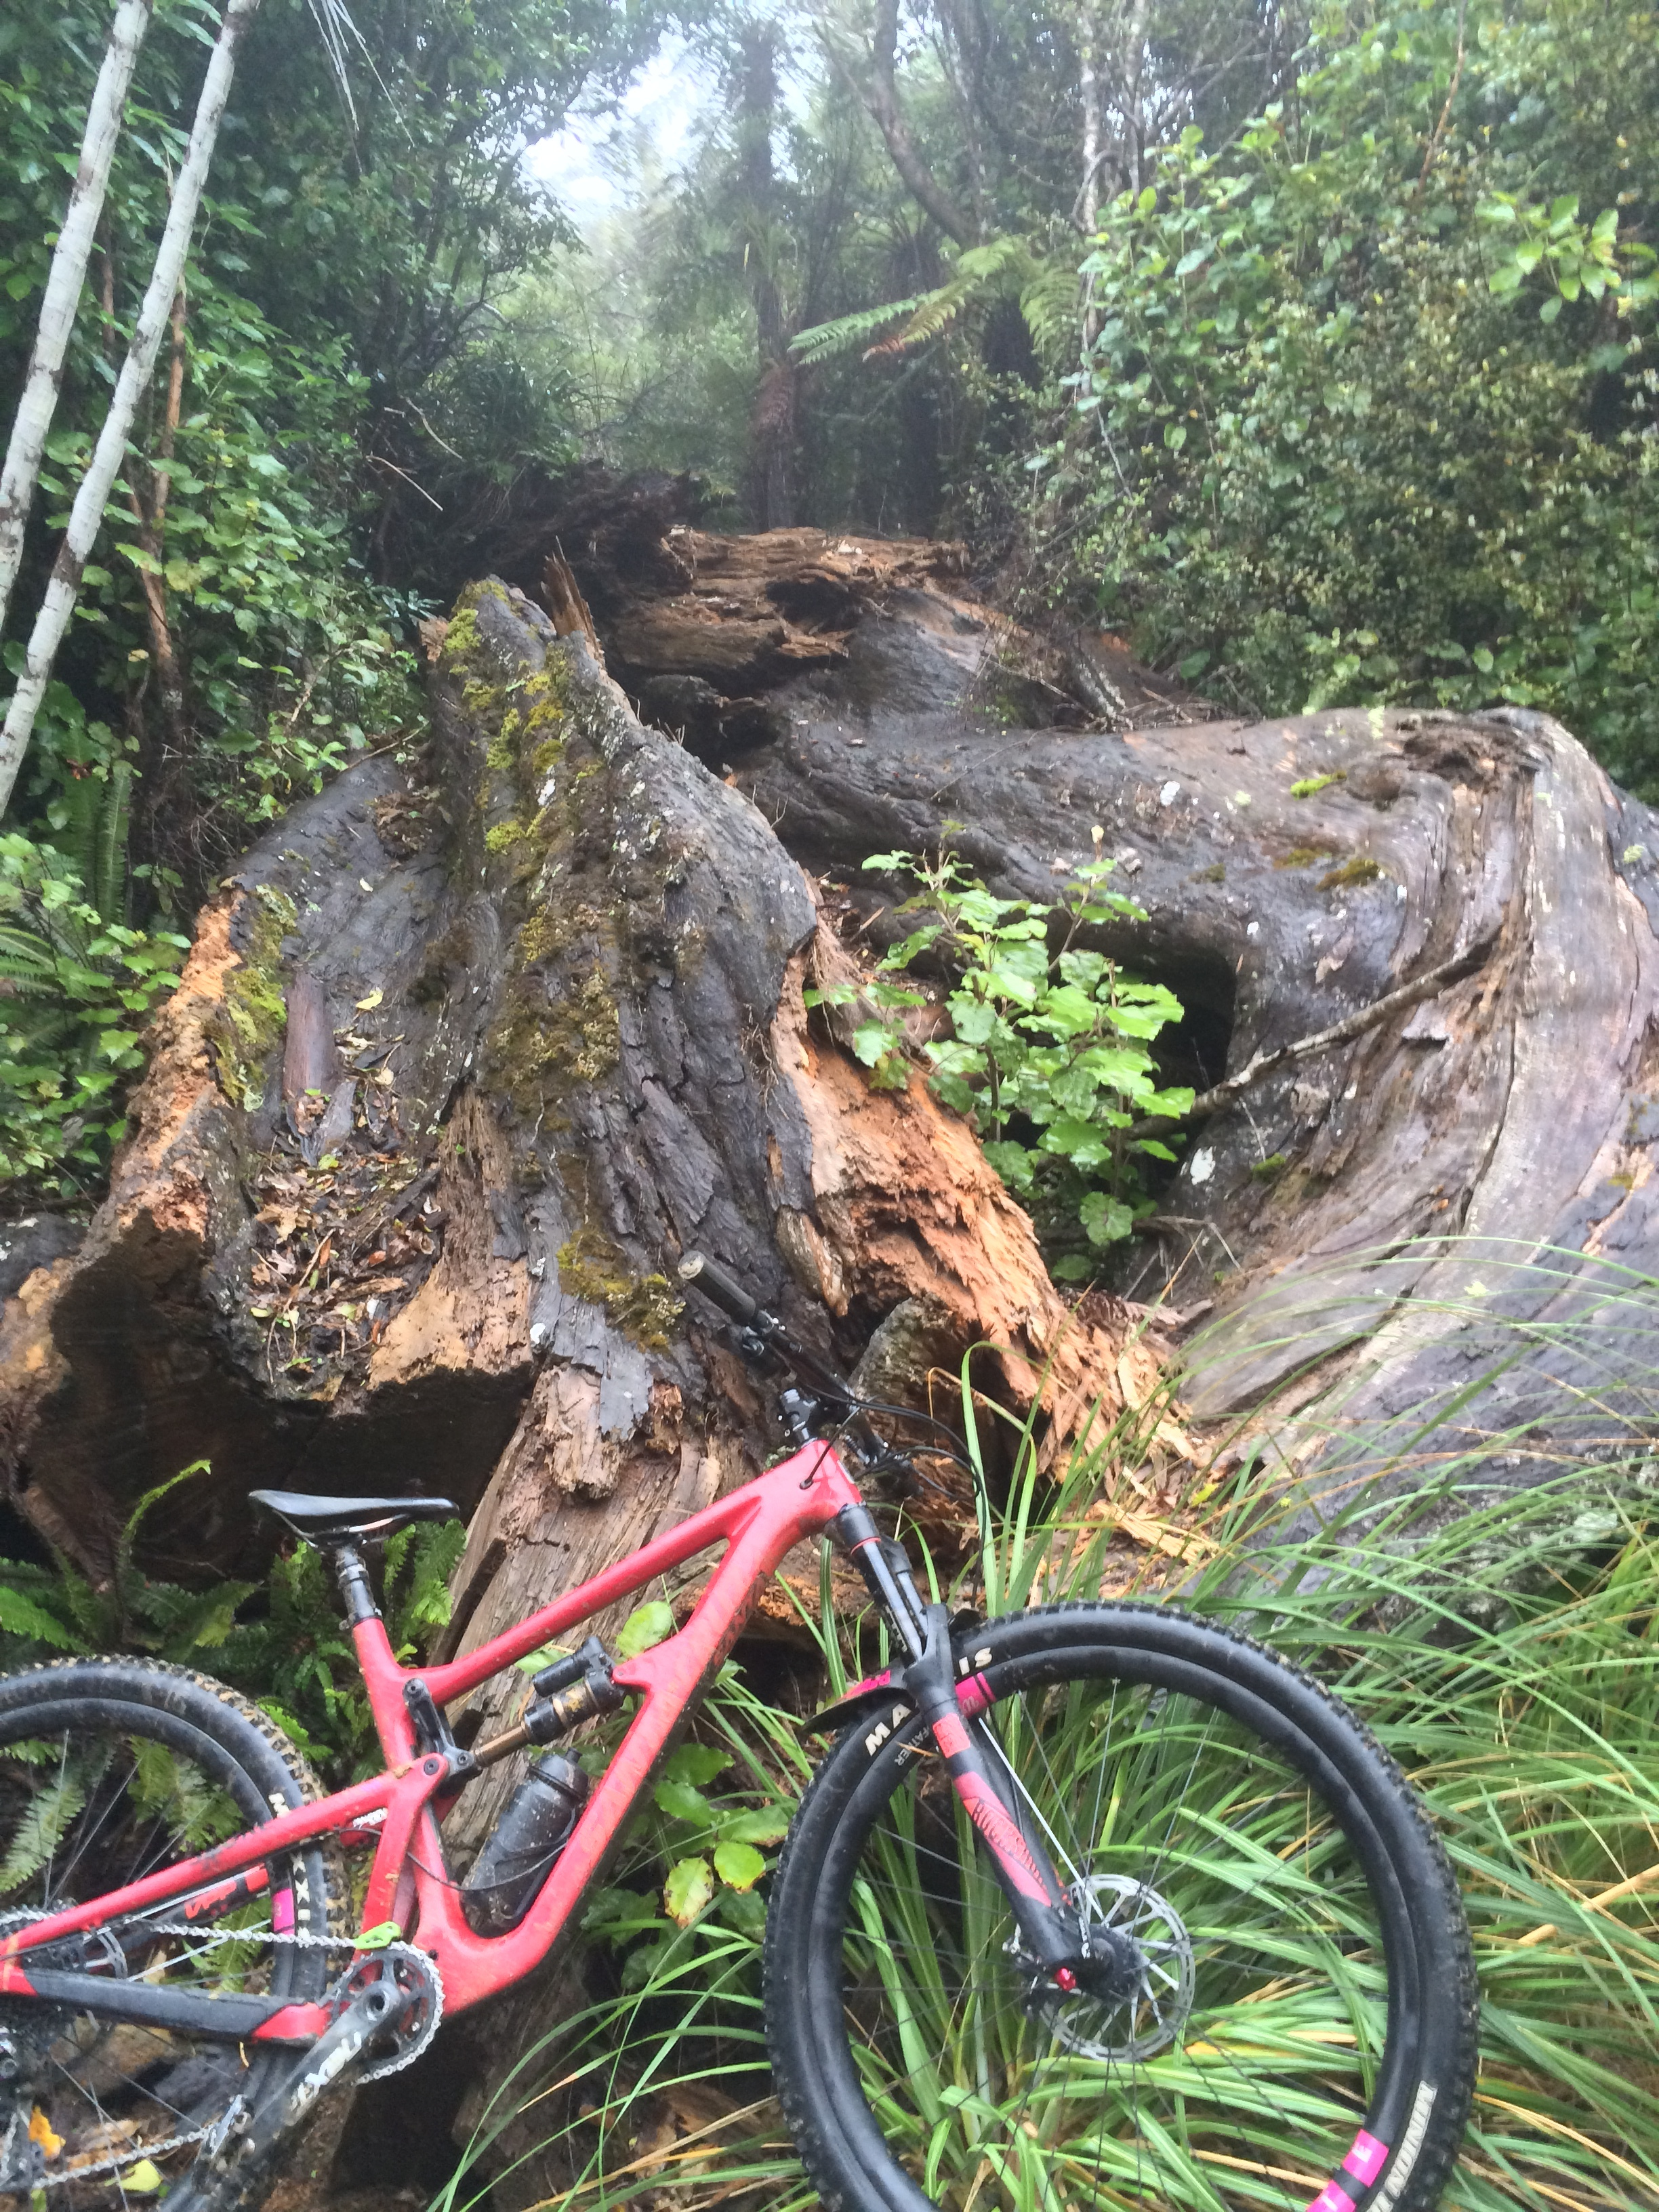 That was one massive tree